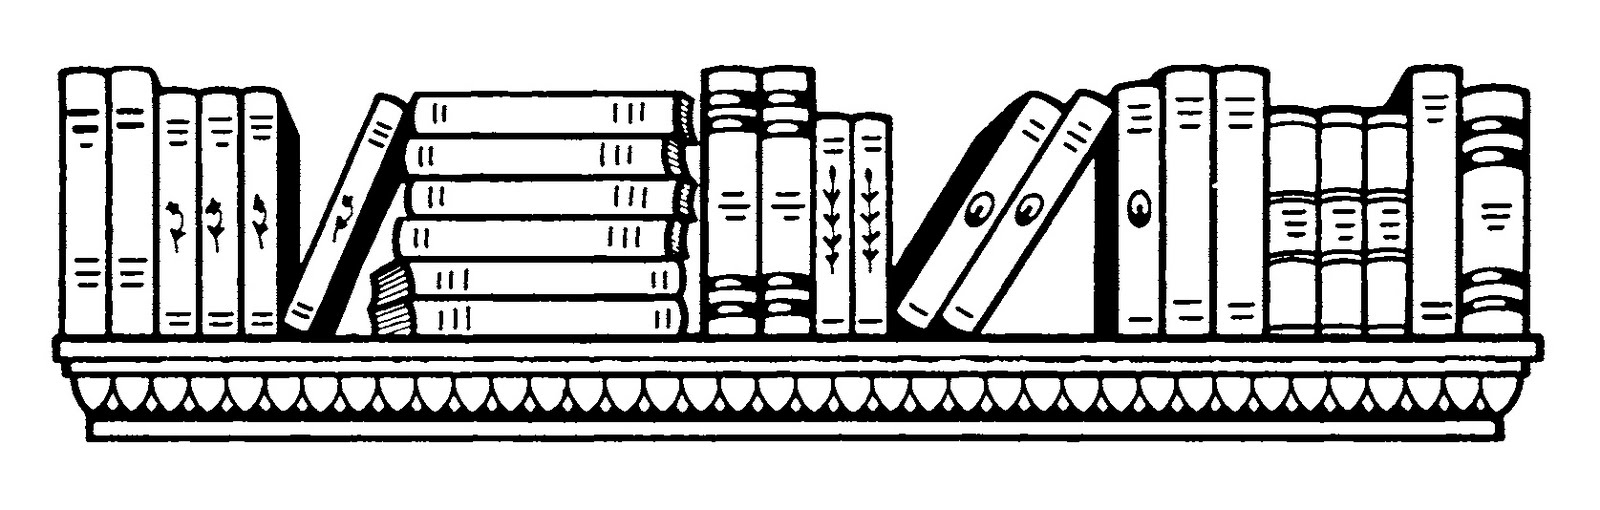 Library clipart black and white Clipart 10832 Clipart and black